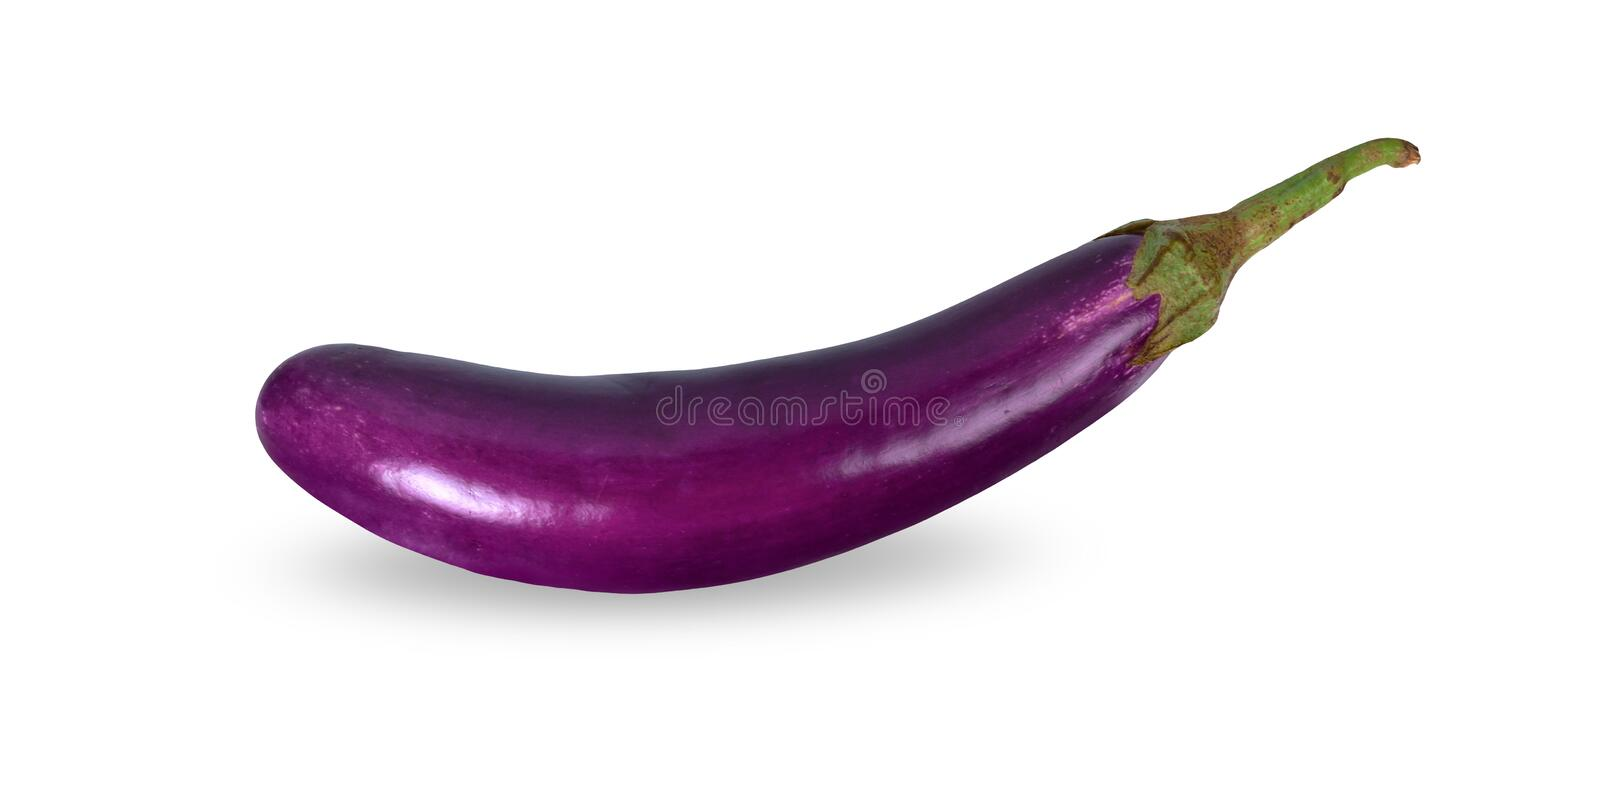 Eggplant on white background. with clipping paths stock image